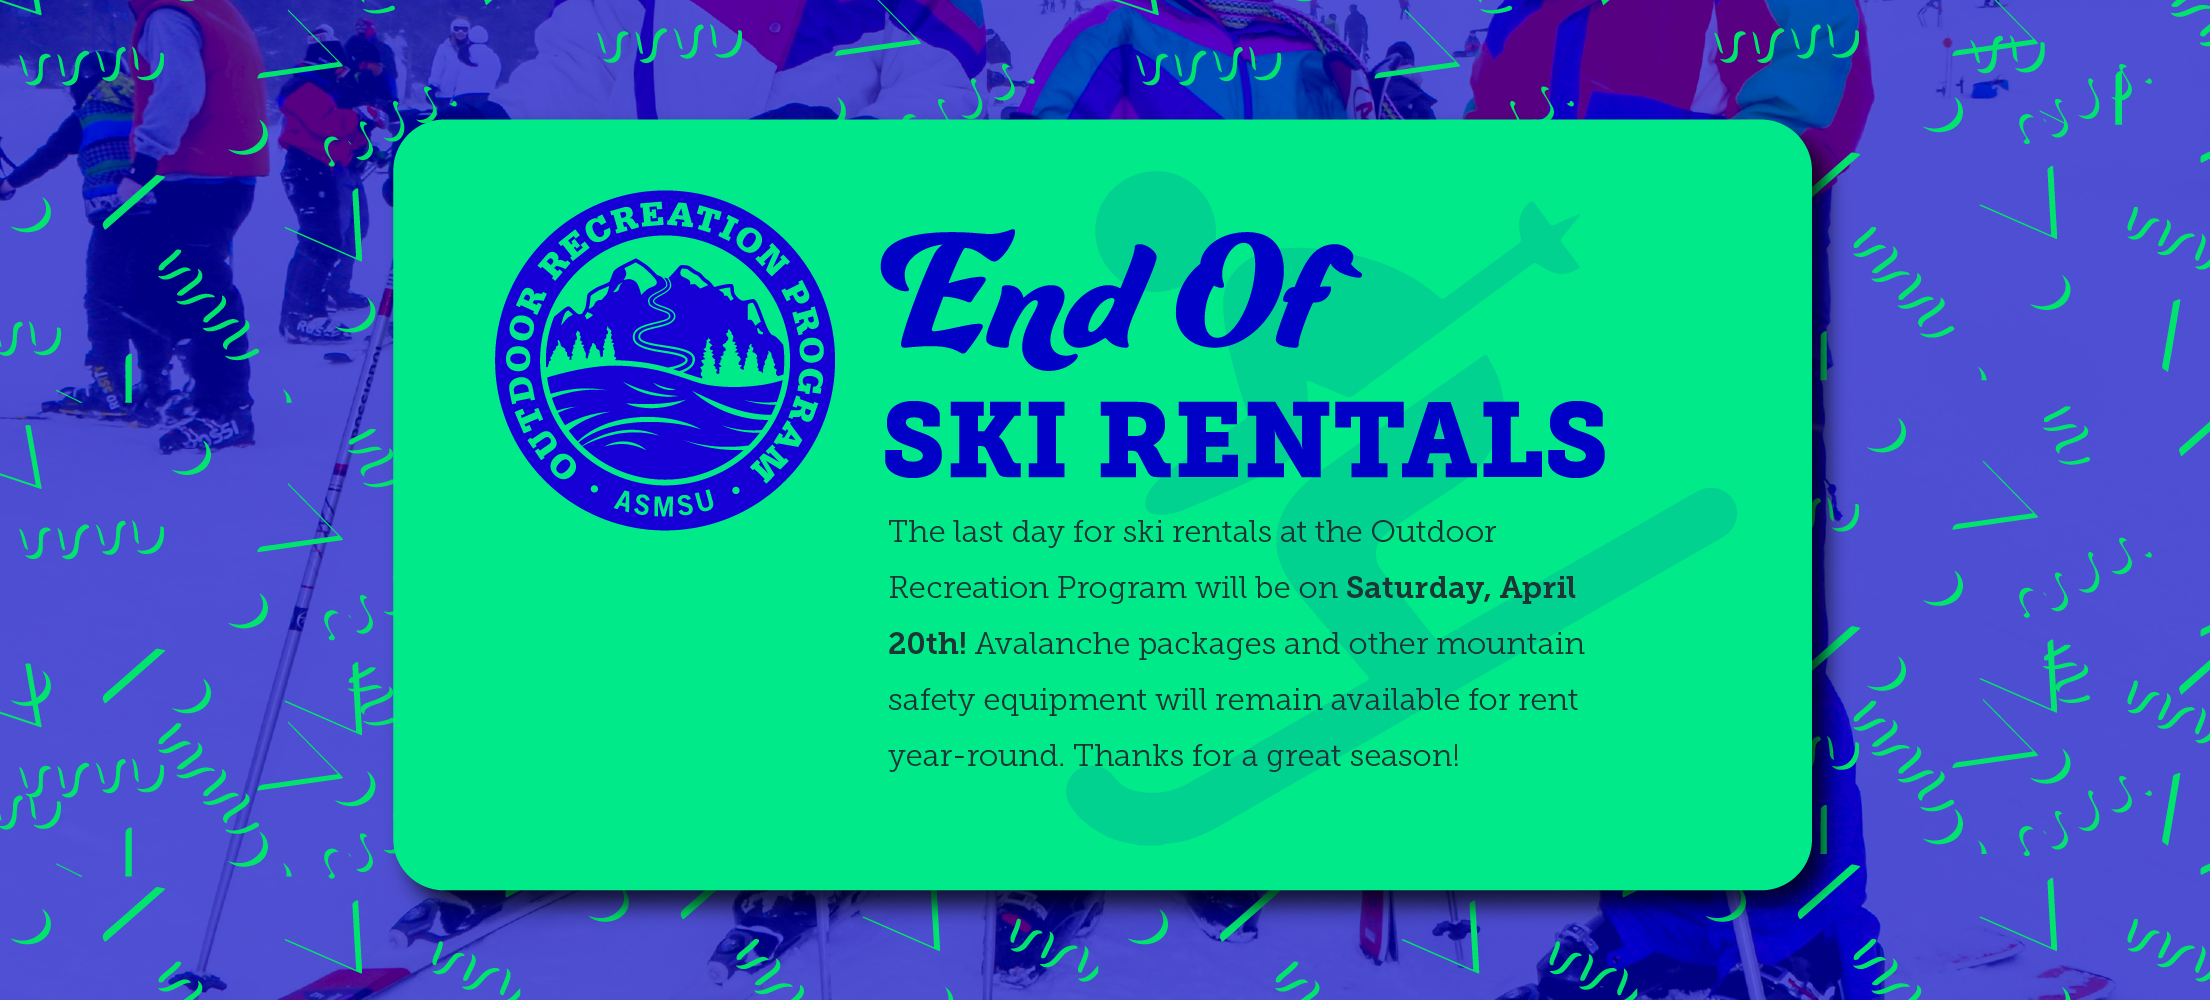 End of Ski Rental Season on Saturday, April 20, 2019.  Avalanche packages and other mountain safety equipment will remain available for rent year-round.